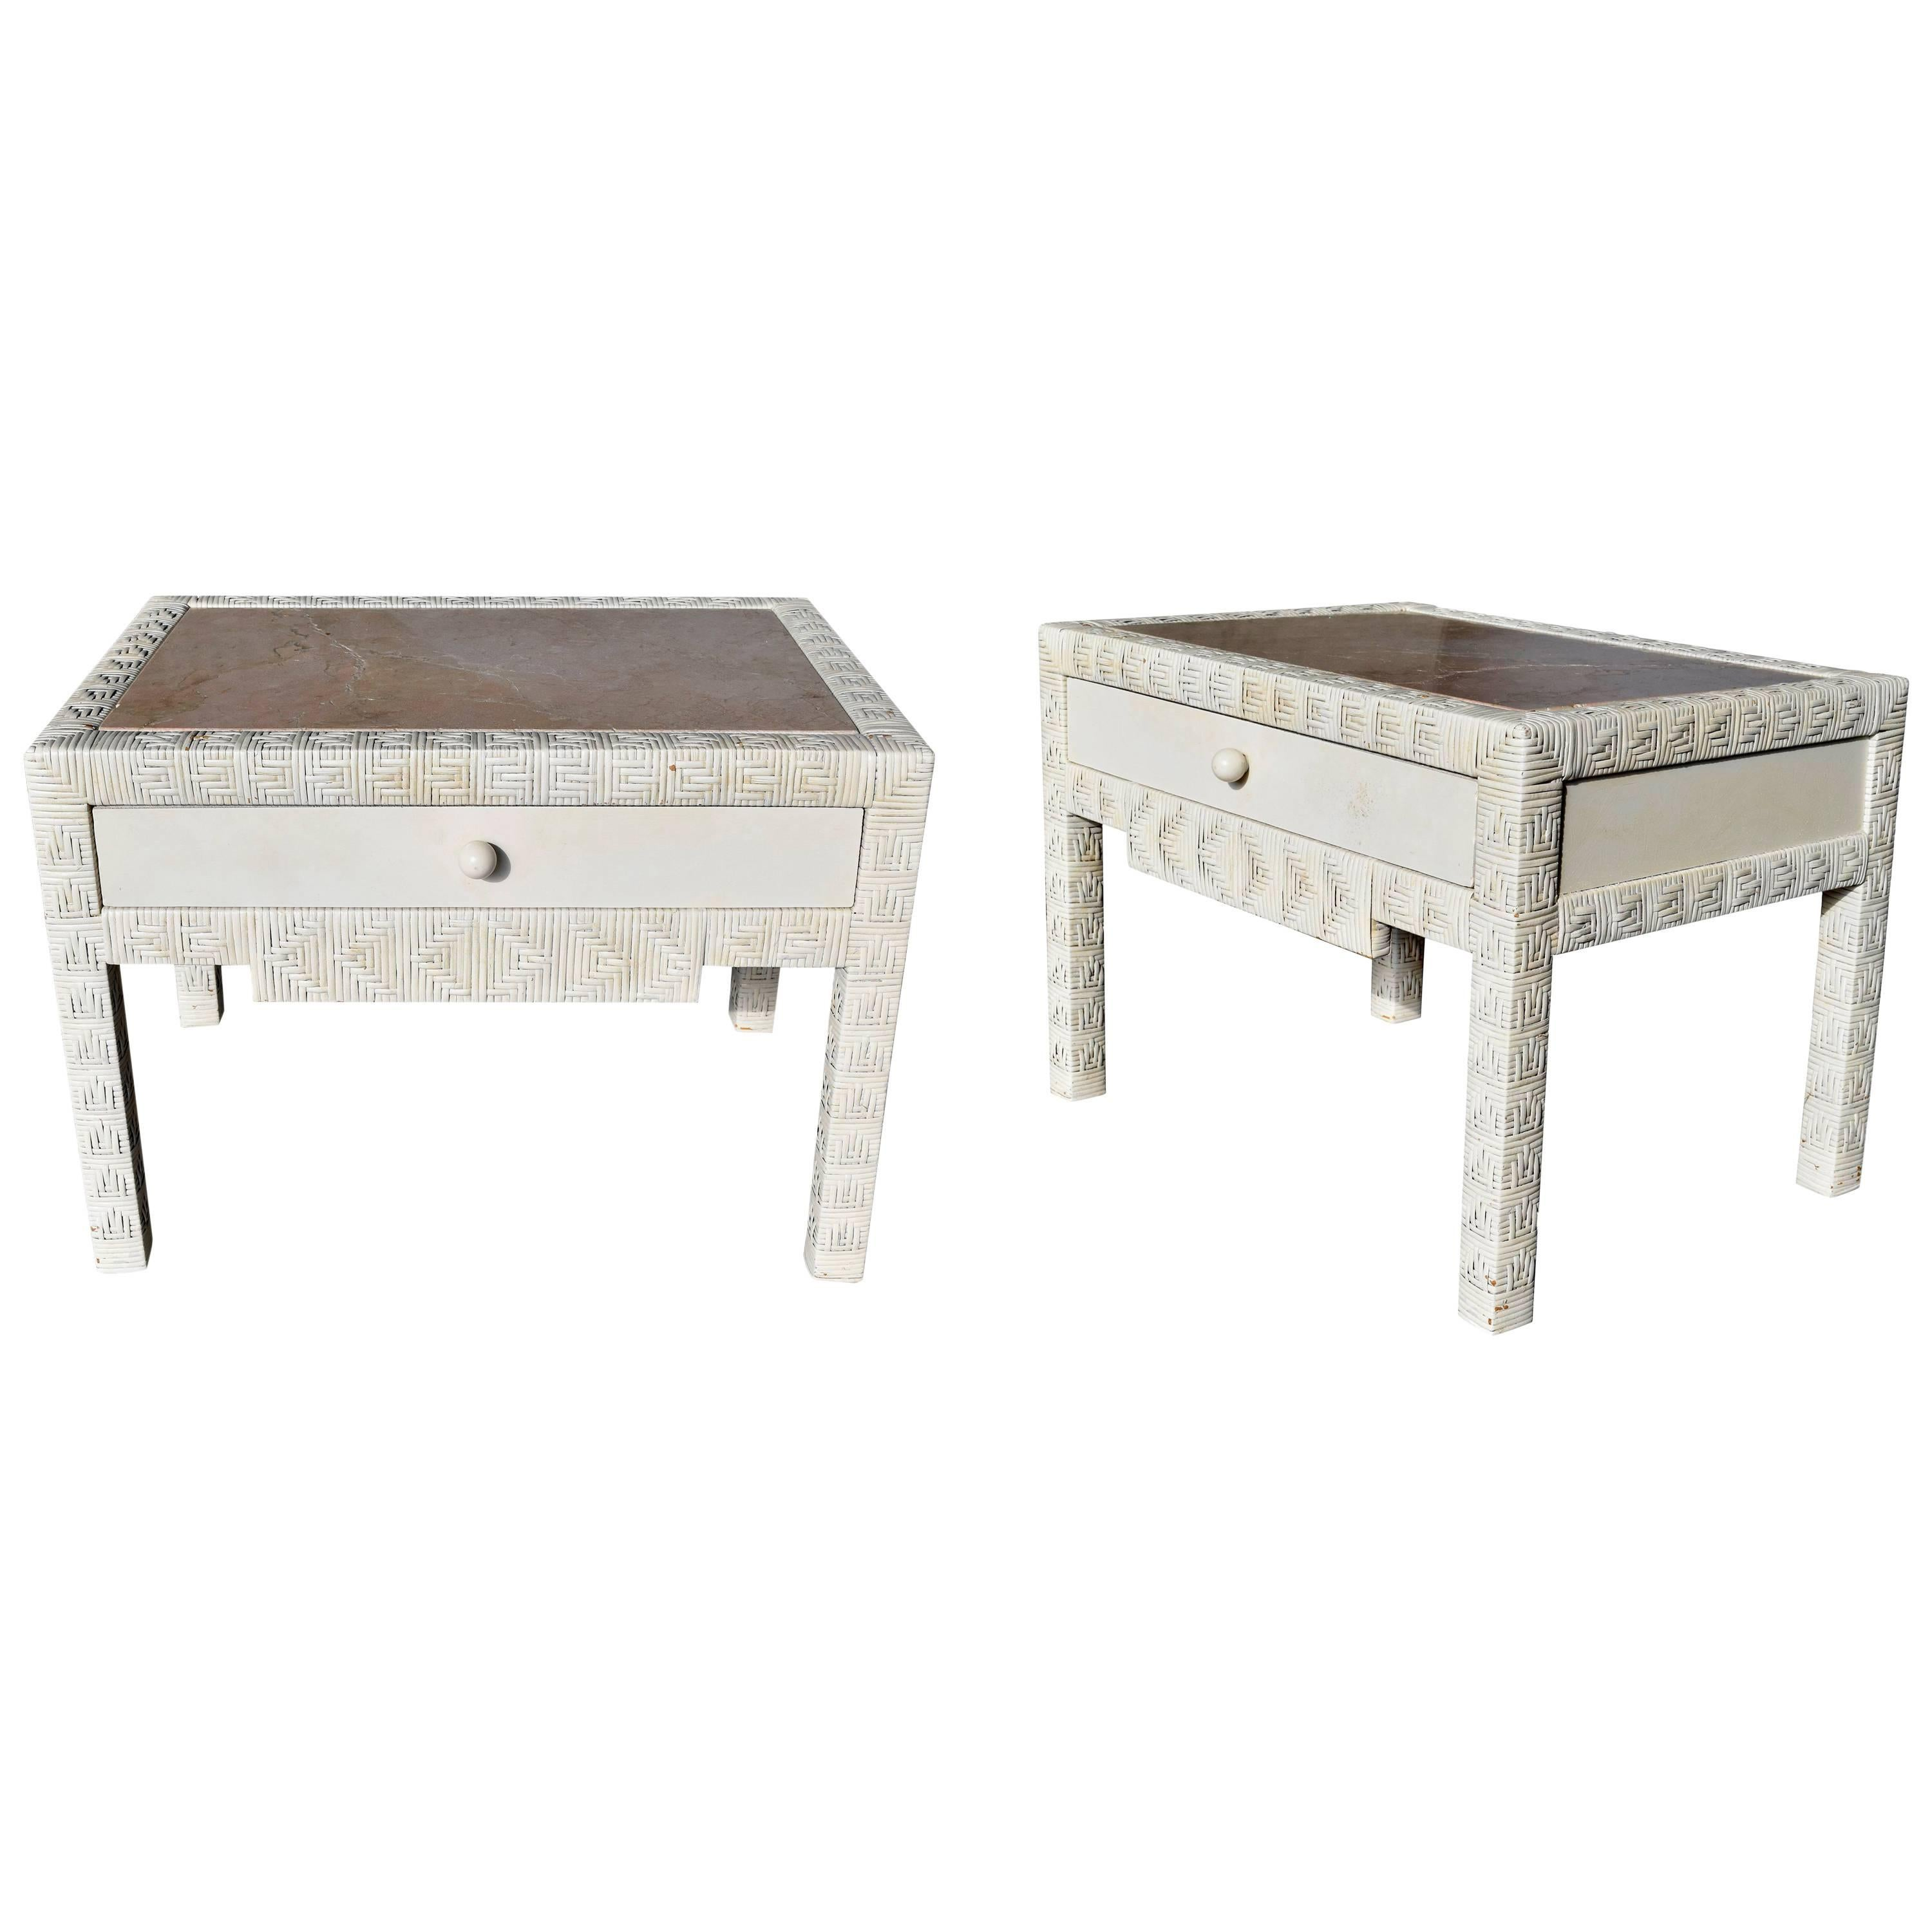 1980s Pair of One Drawer wicker Bedside Tables with Crema Marble Tops